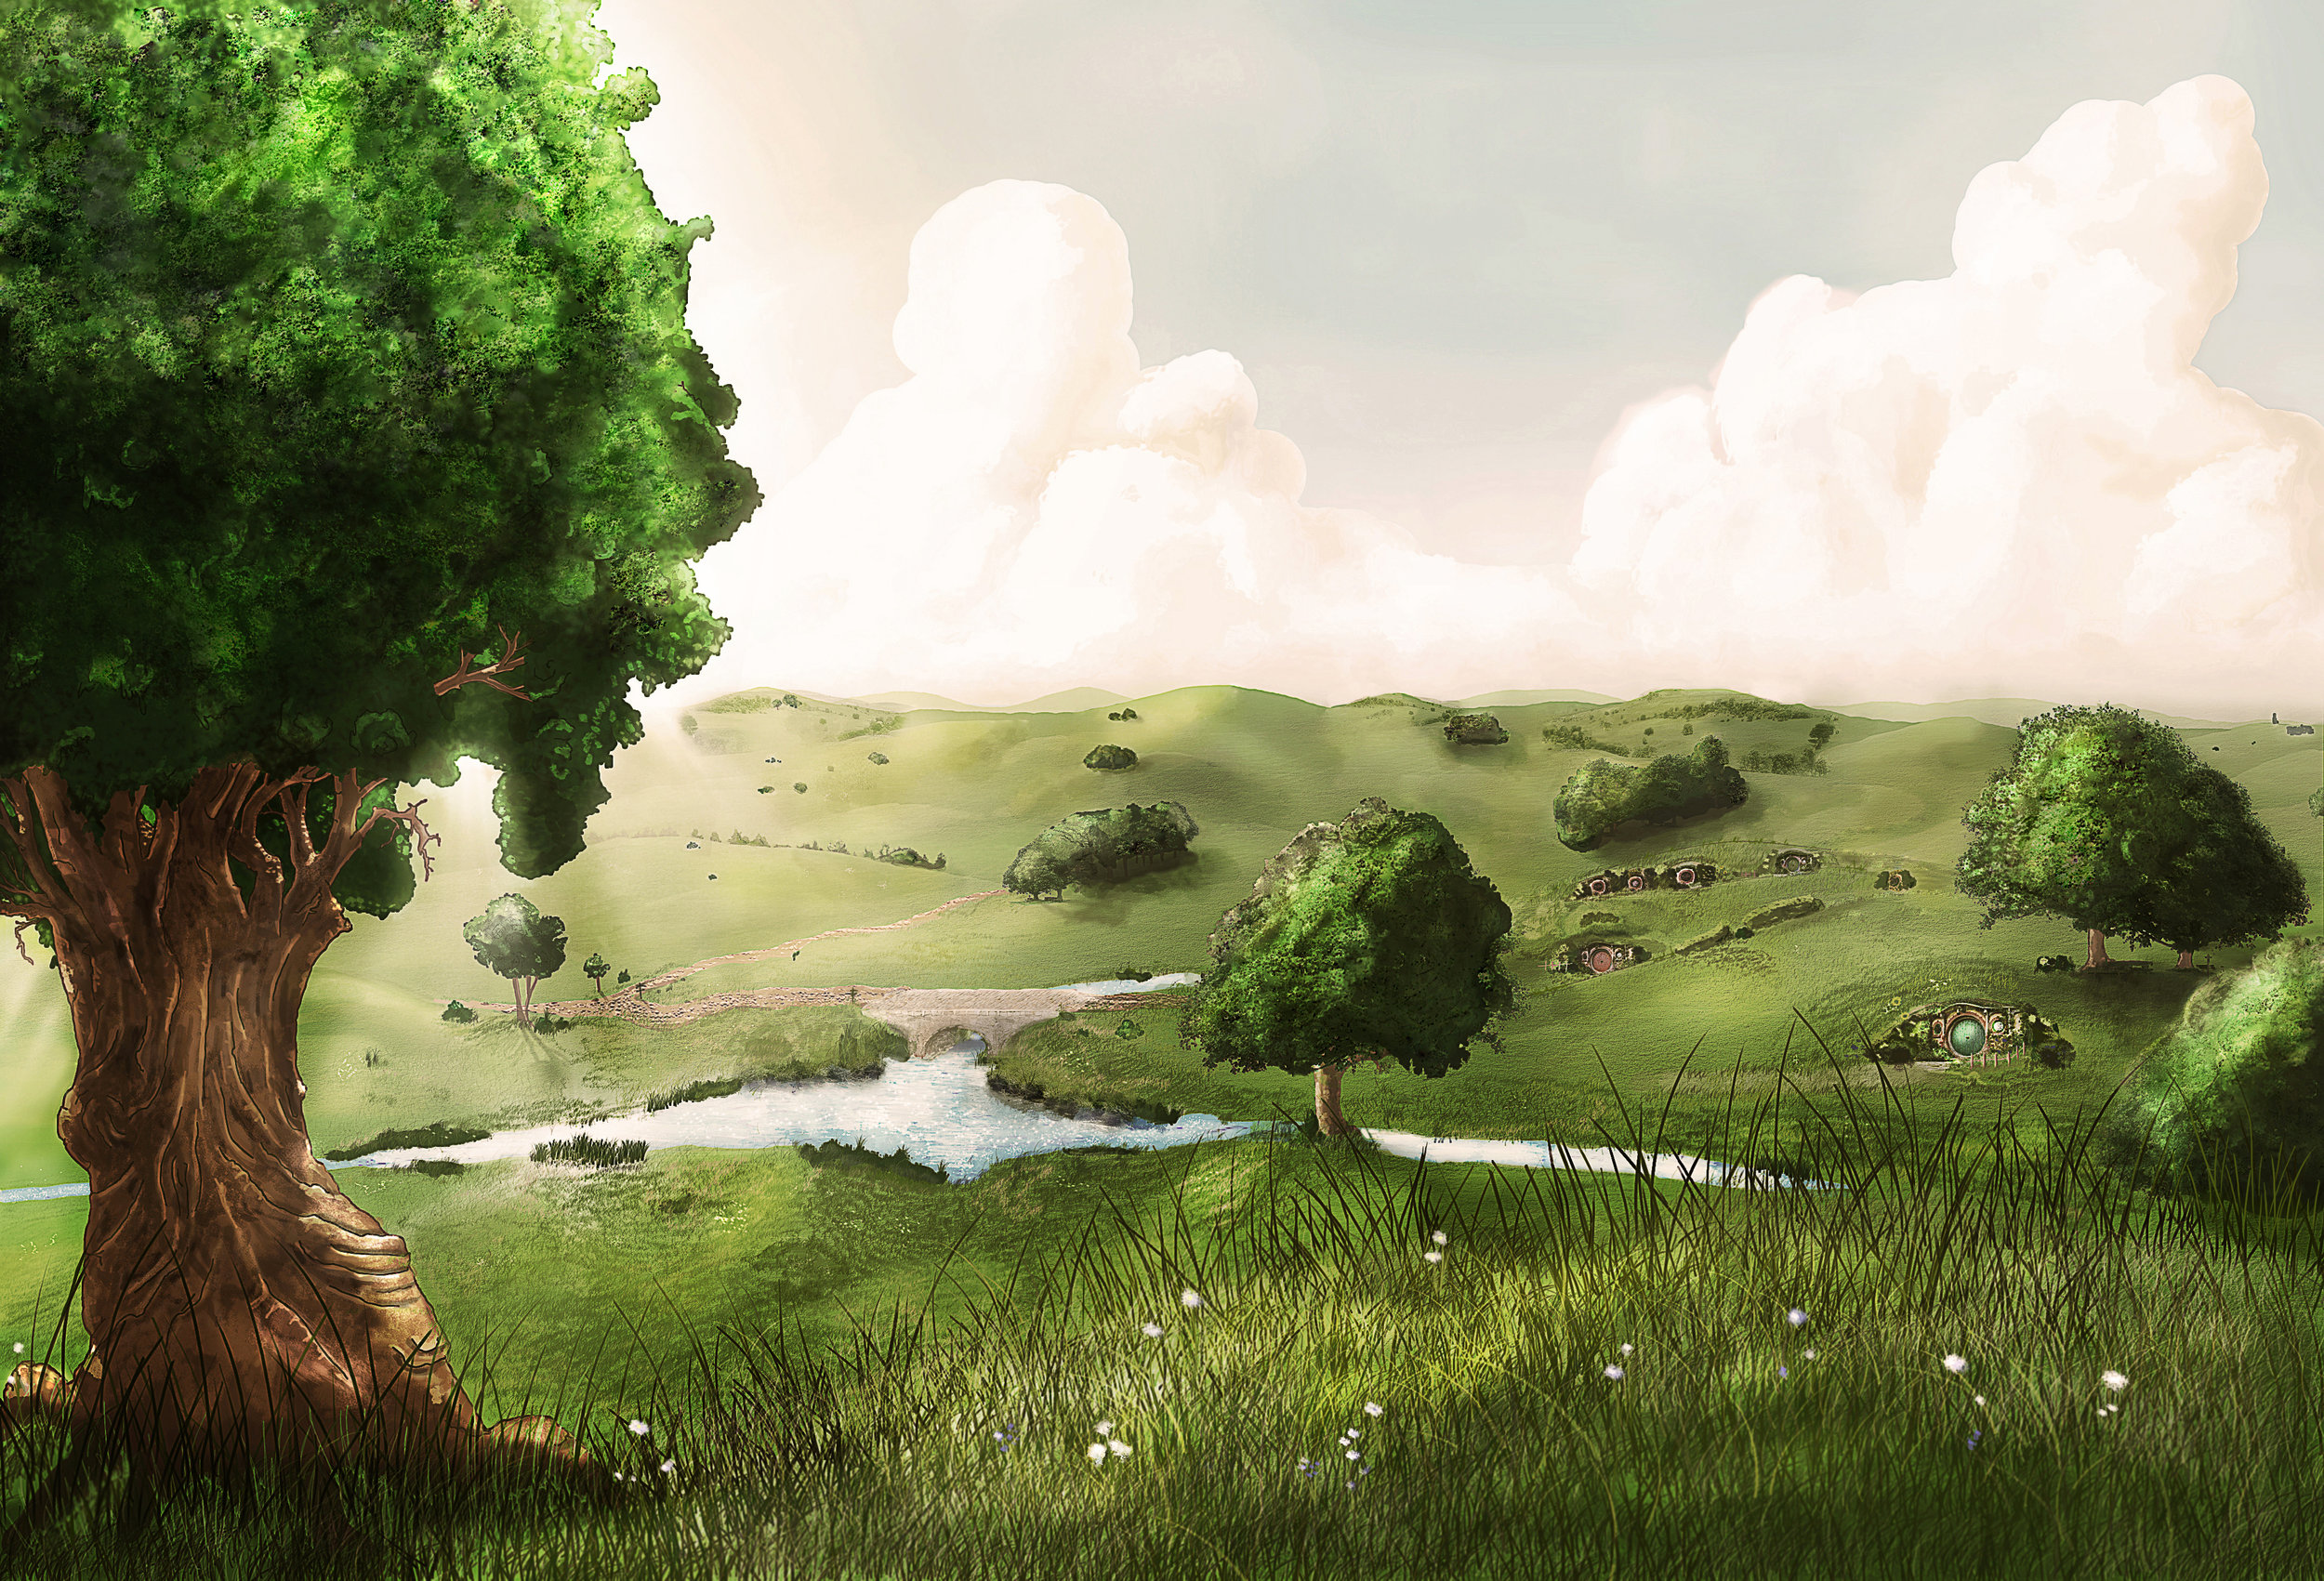 The Shire - A sunny day in the Shire, no worries in sight.Making of: SoonDate: 2011Tools: Pencil - Paper - Photoshop - Wacom Tablet - PC